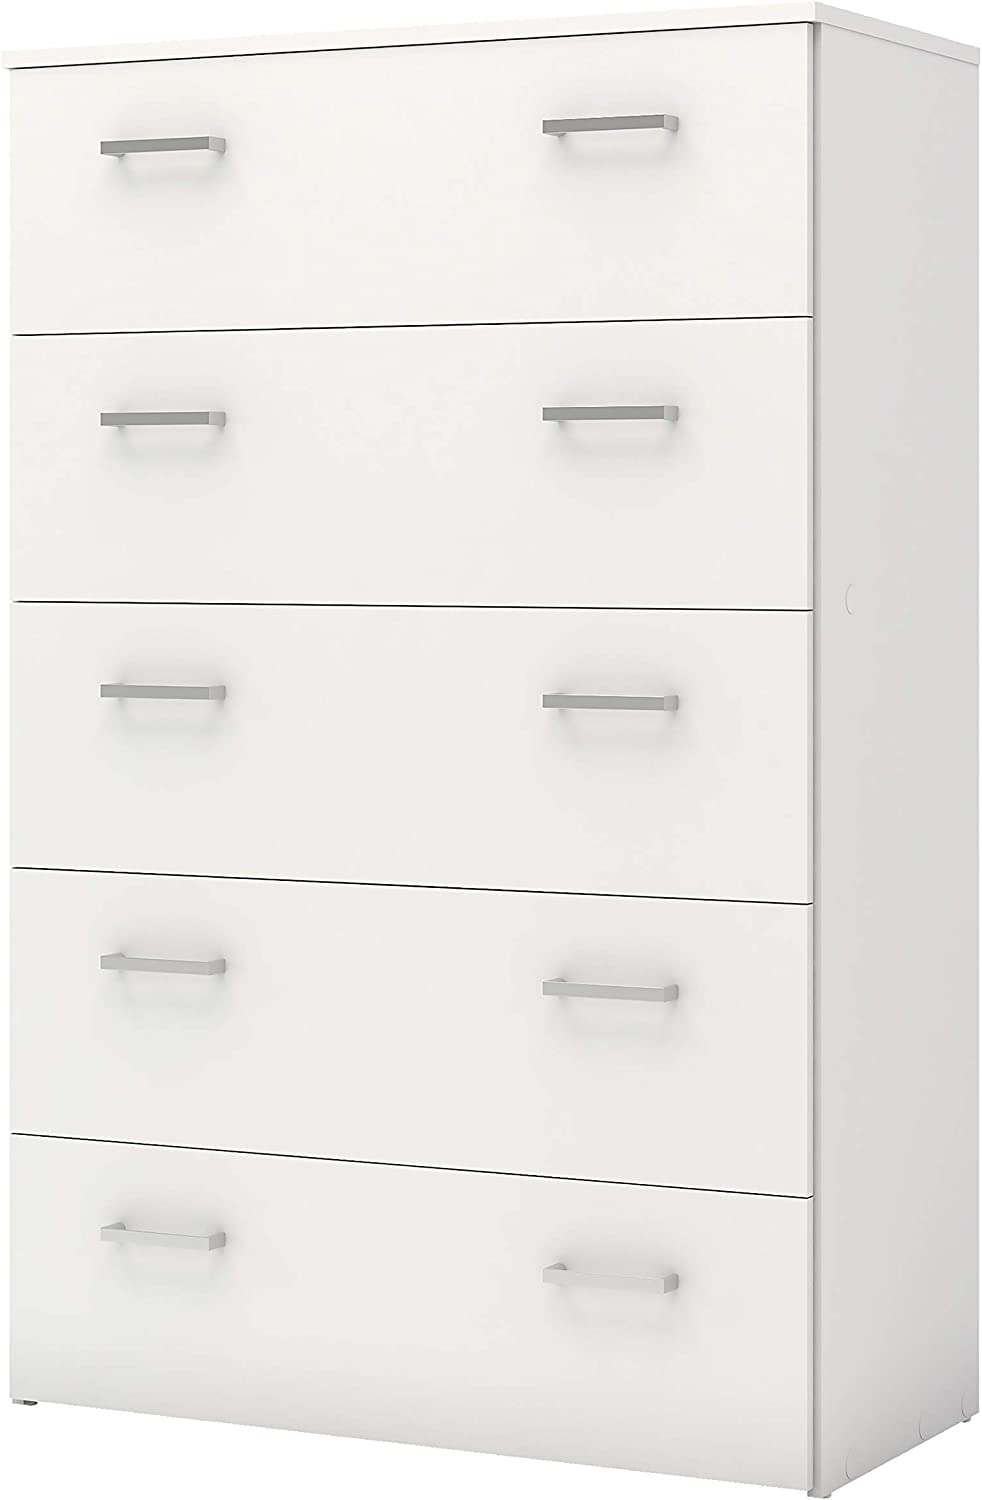 Furniture To Go Space Wardrobe 2 Doors 3 Drawers in Oak with White High Gloss